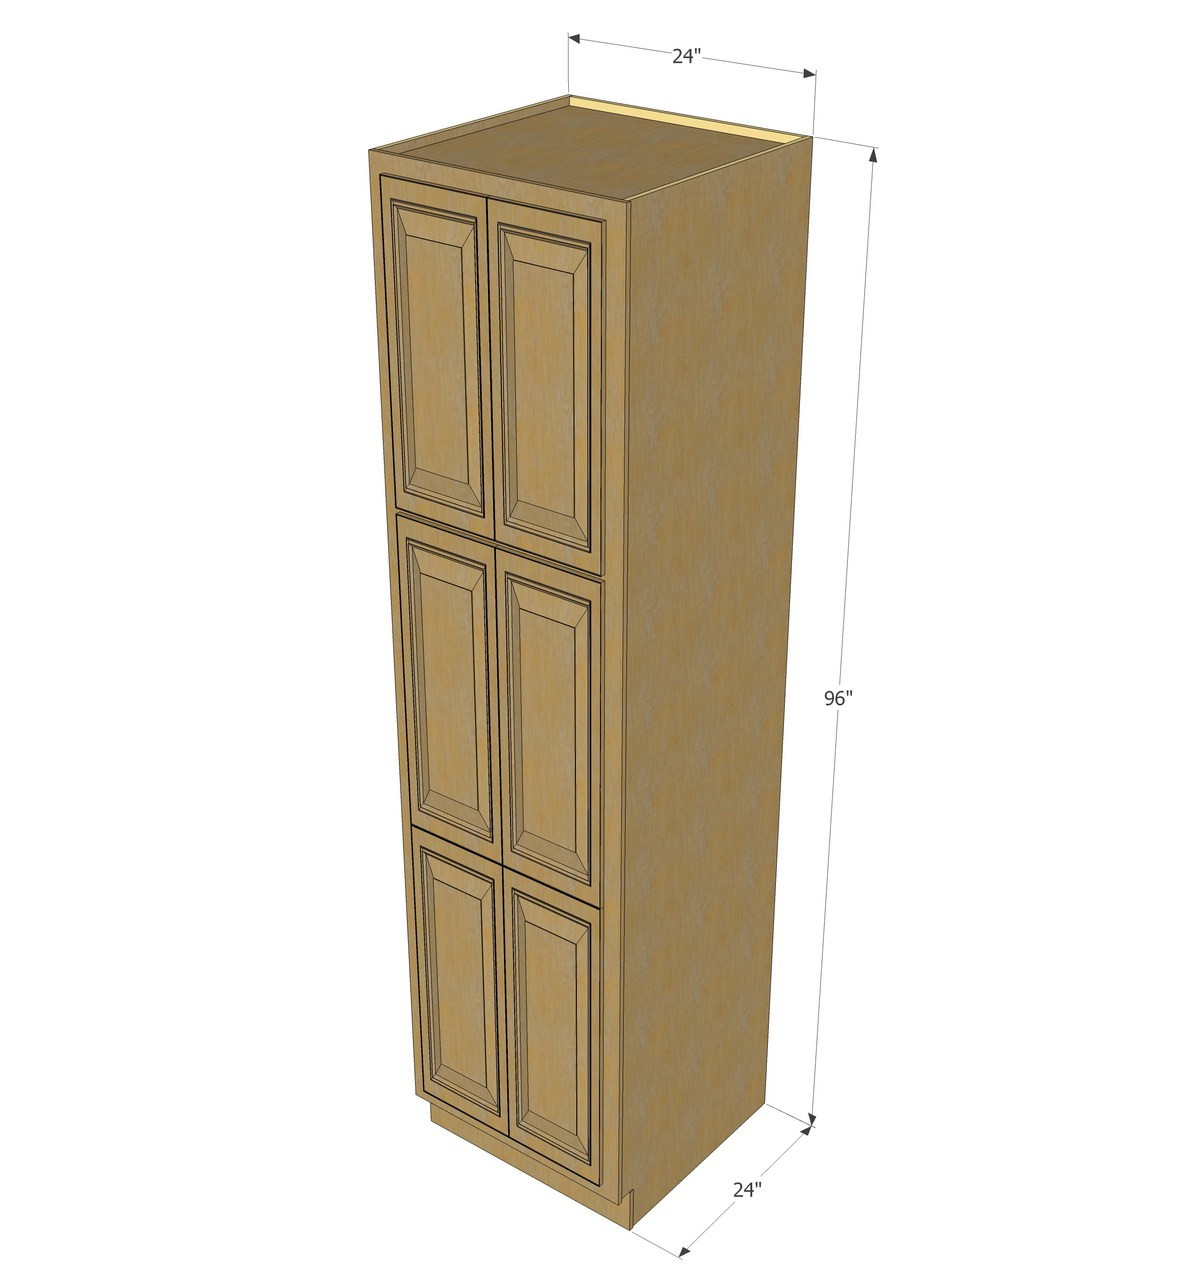 Regal Oak Pantry Cabinet Unit 24 Inch Wide X 96 Inch High